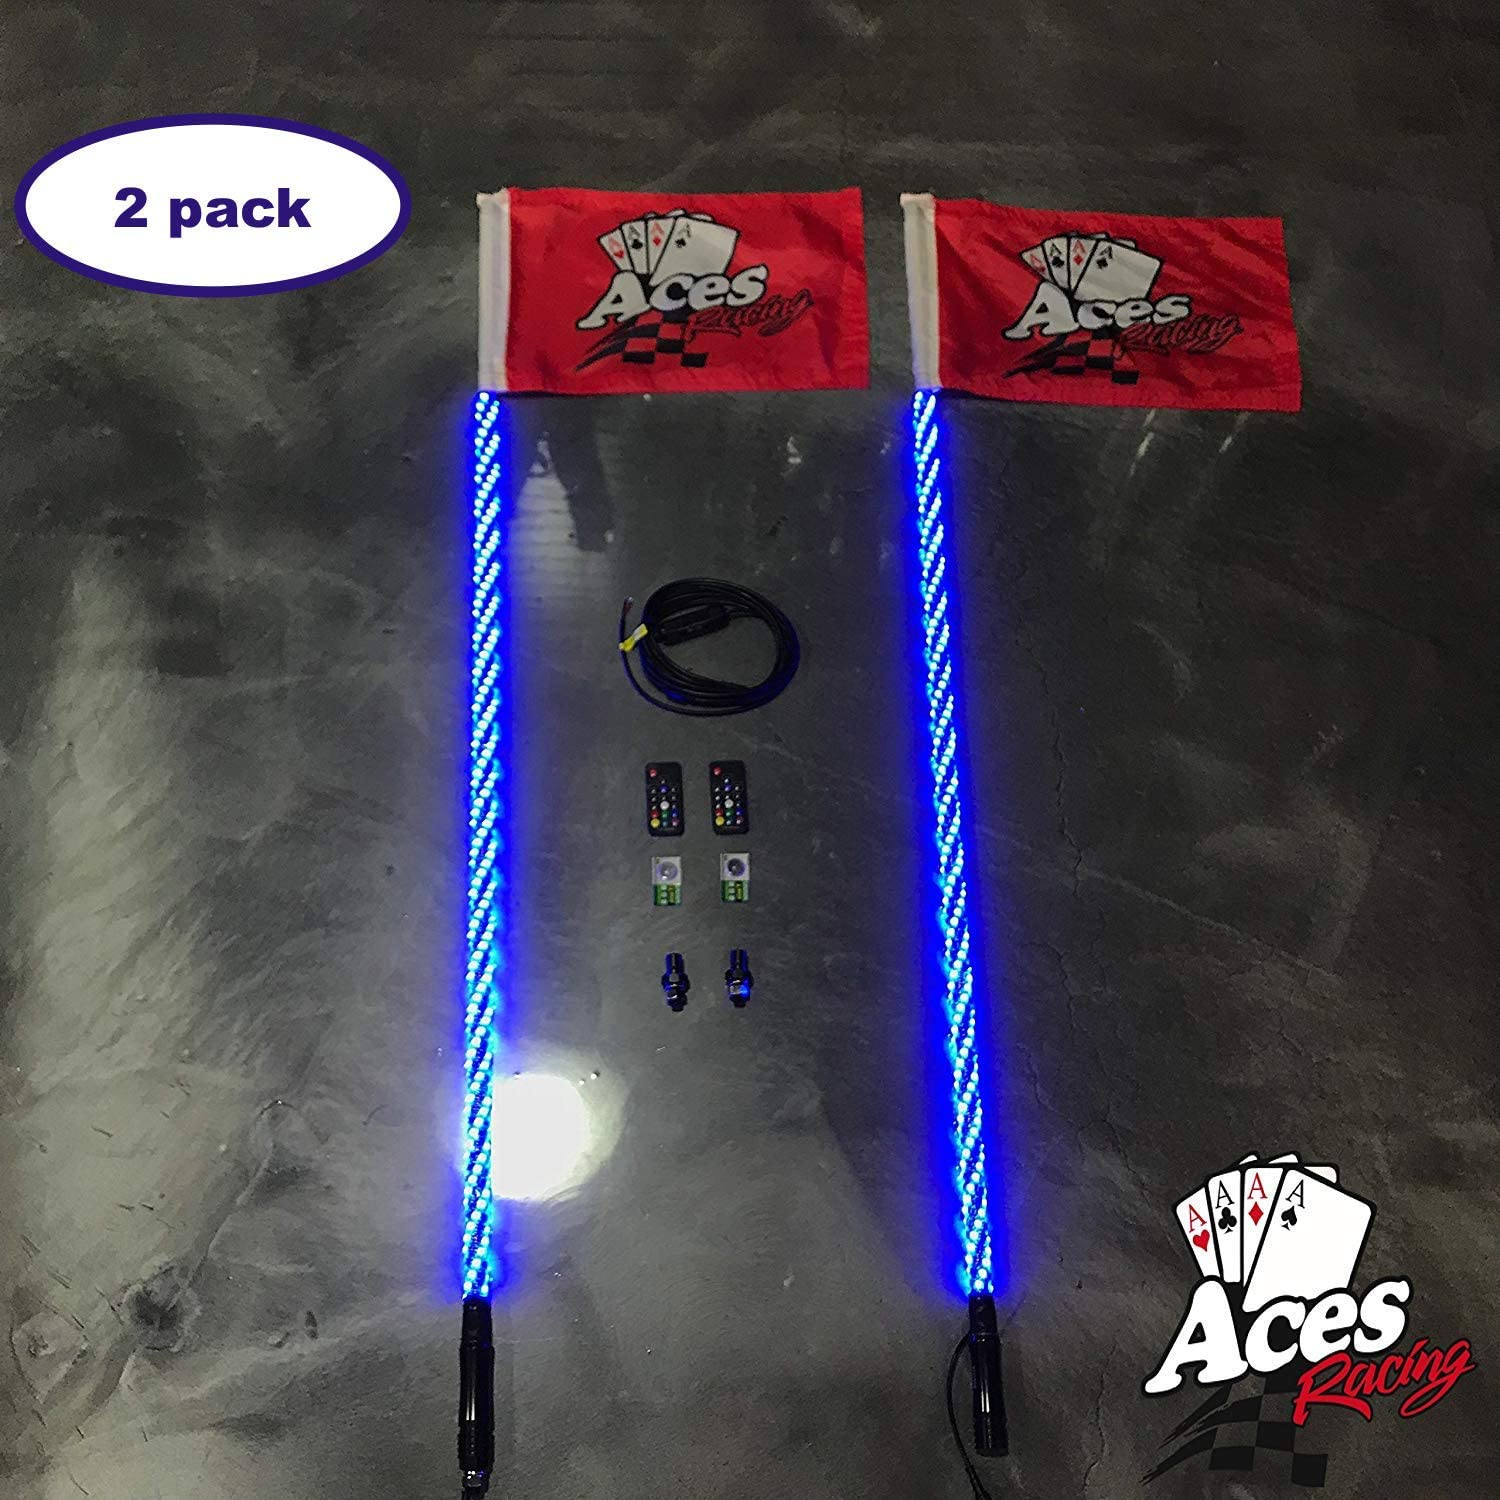 Deluxe Lighted Whips with Quick Connect and New products world's highest quality popular 1 5 F Bombing free shipping Warranty Year